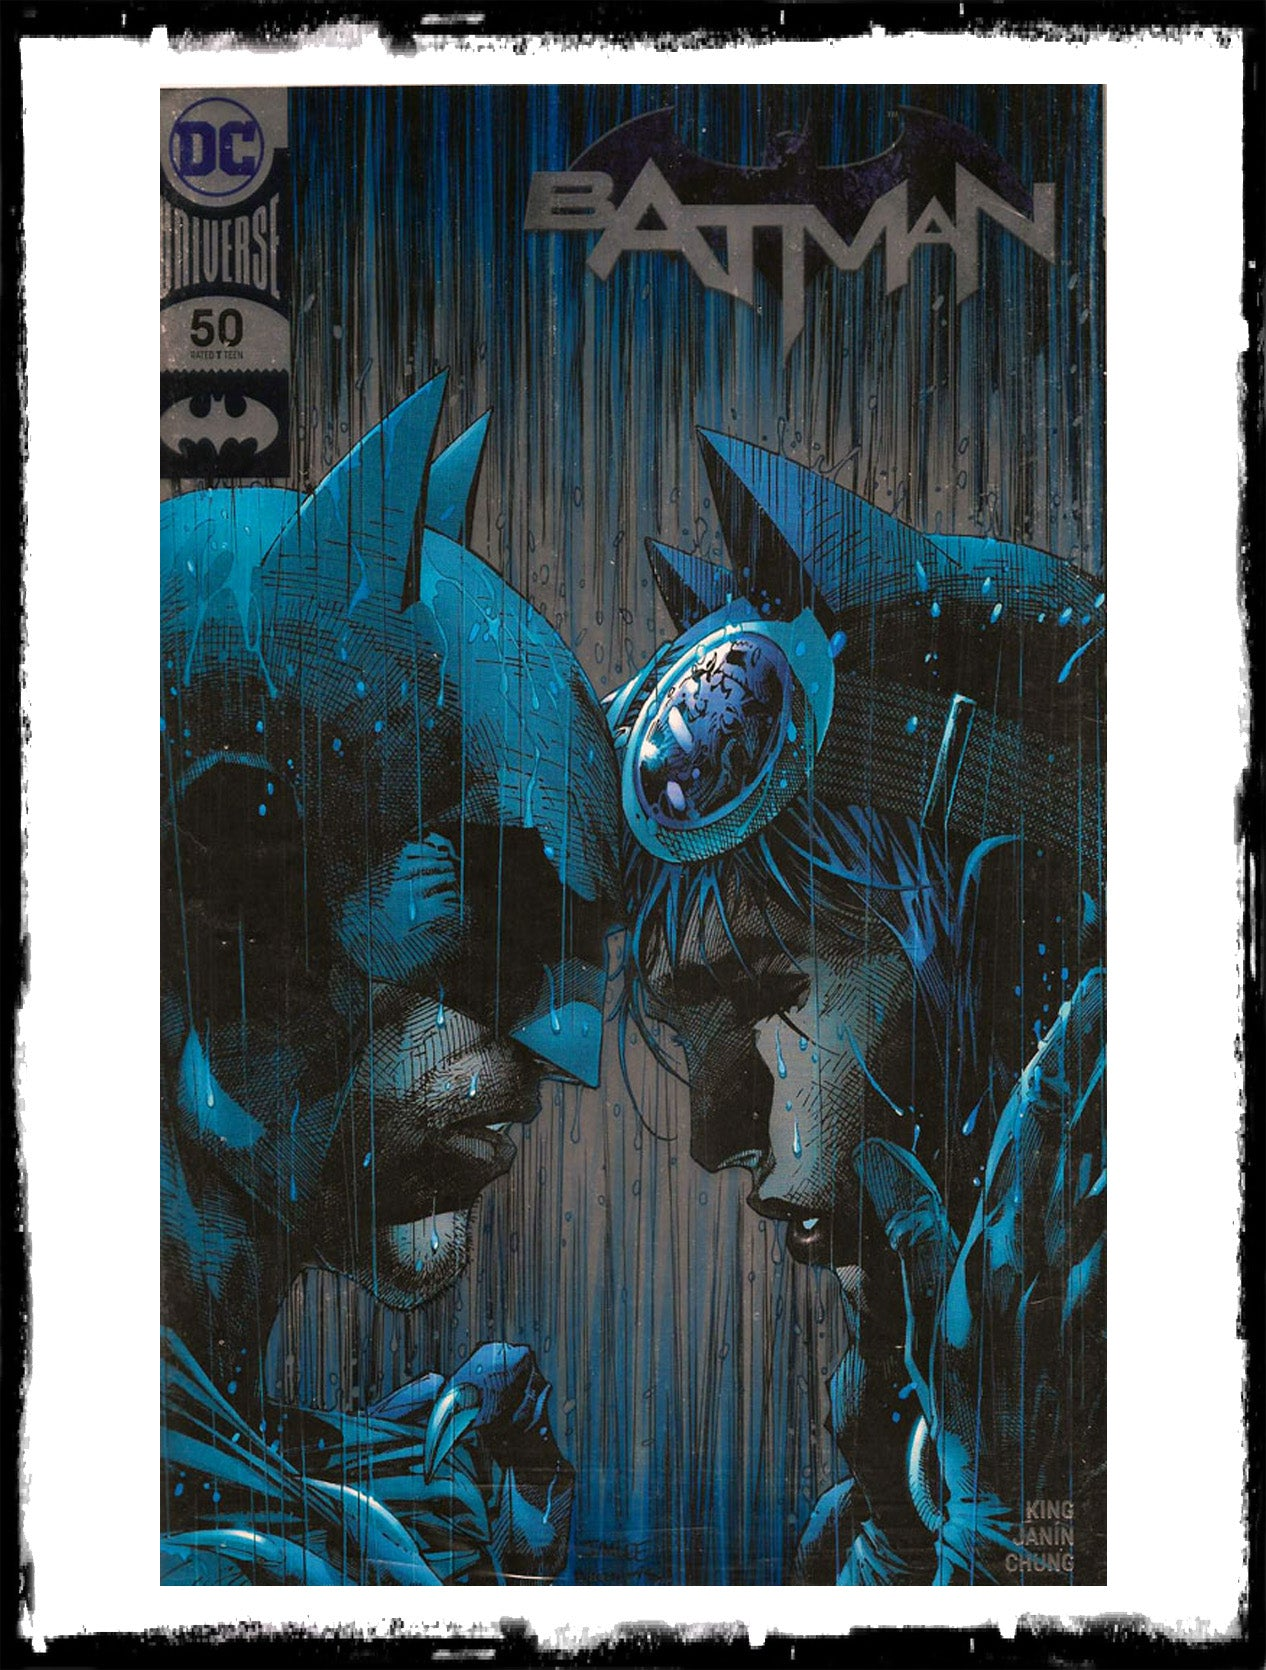 BATMAN - #50 JIM LEE FOIL SDCC 2018 CONVENTION VARIANT (2018 - CONDITION NM)